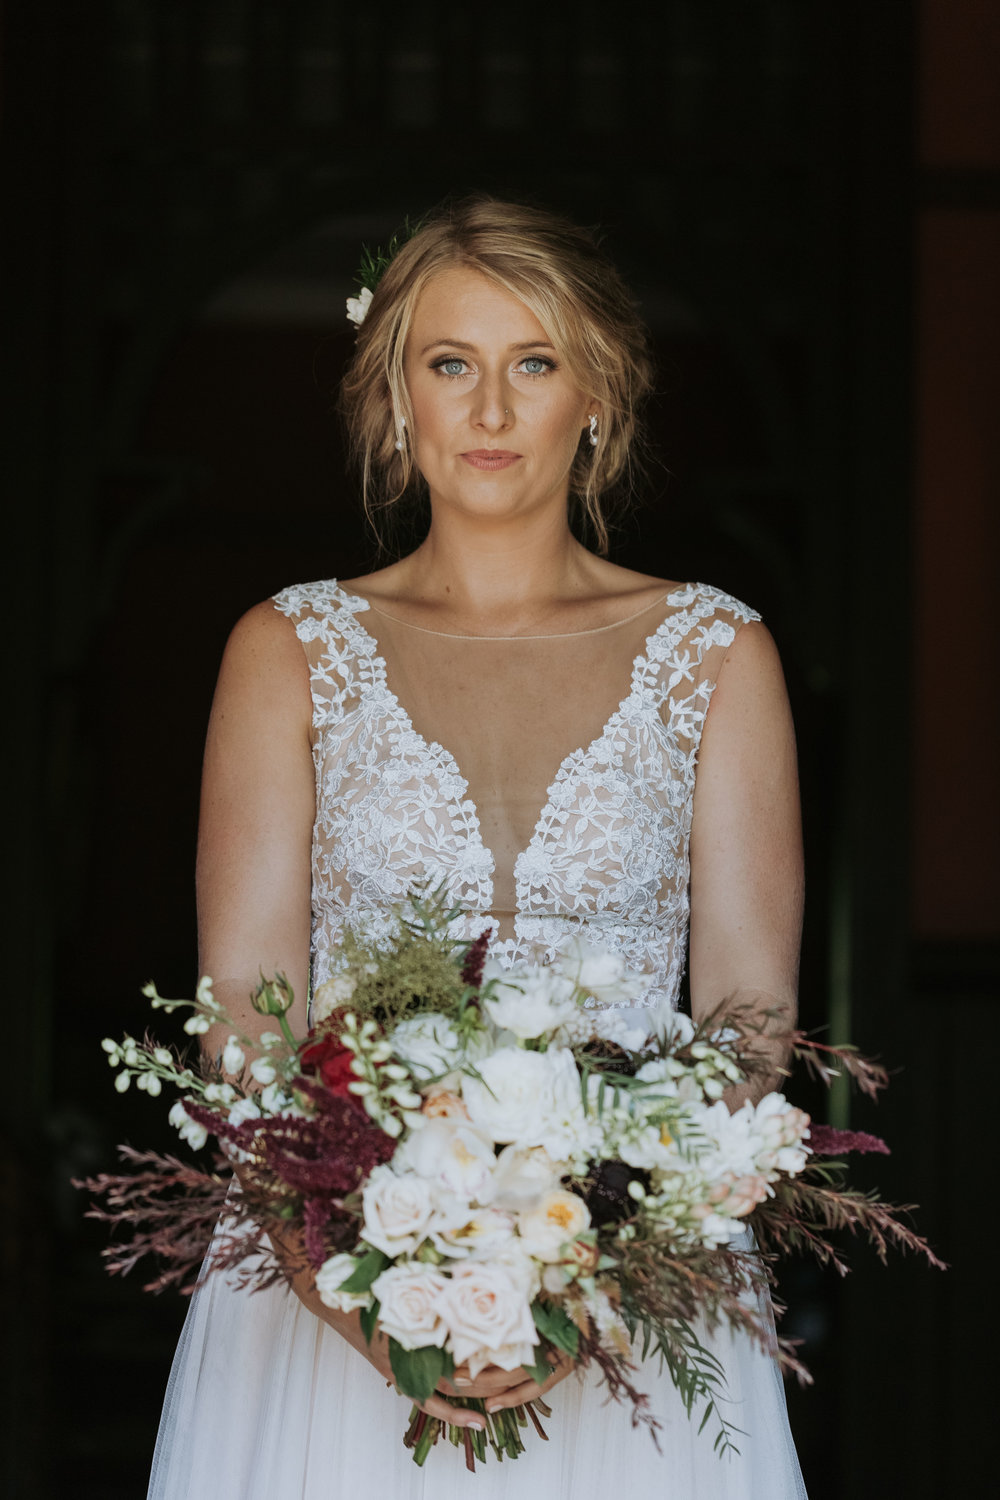 Beautiful bride with her bouquet photo. Natural south coast wedding photography